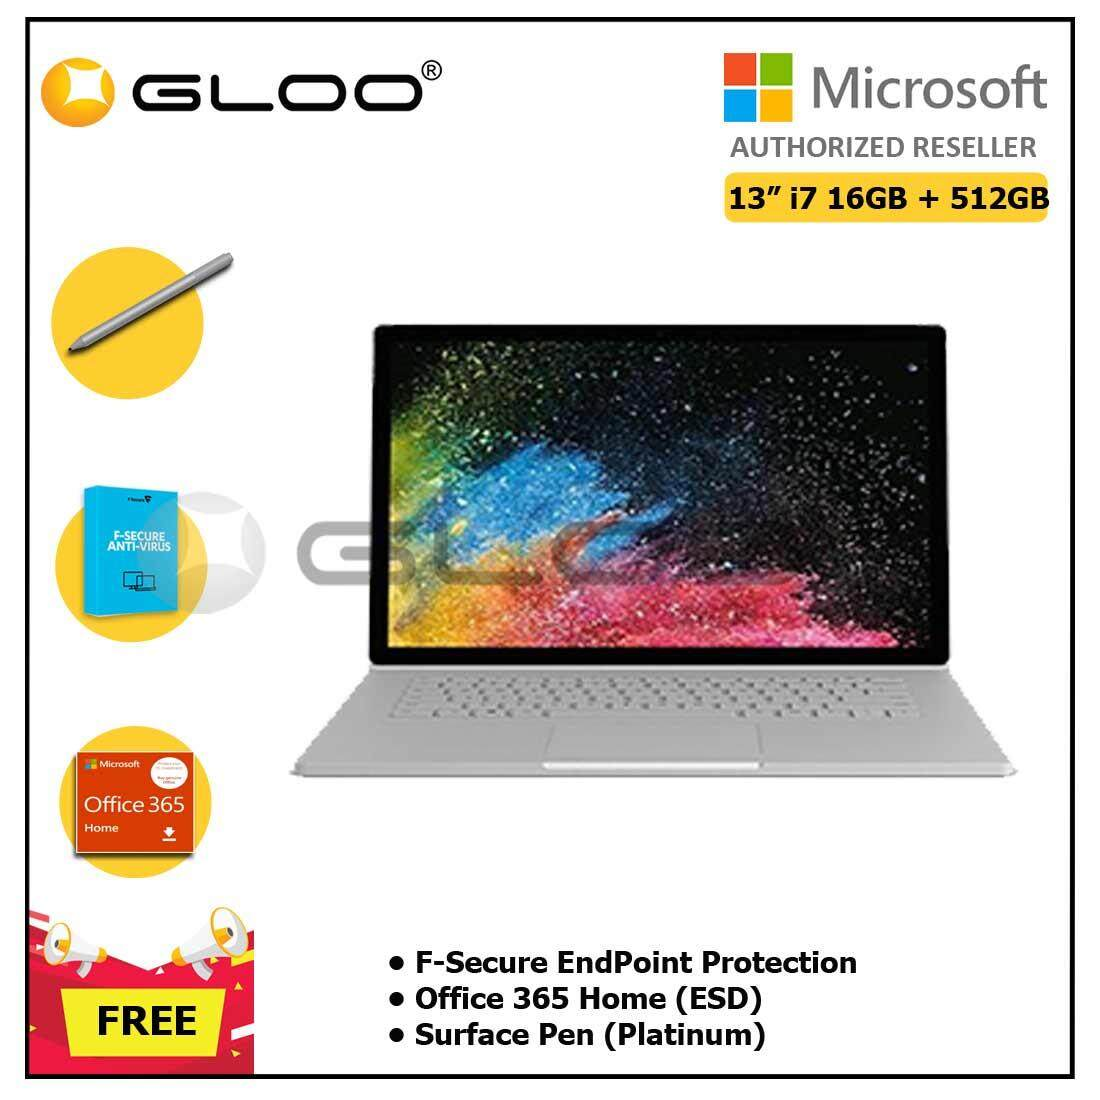 """Microsoft Surface Book 2 13"""" i7/16GB 512GB + F-Secure EndPoint Protection + Office 365 Home ESD + Pen Platinum"""